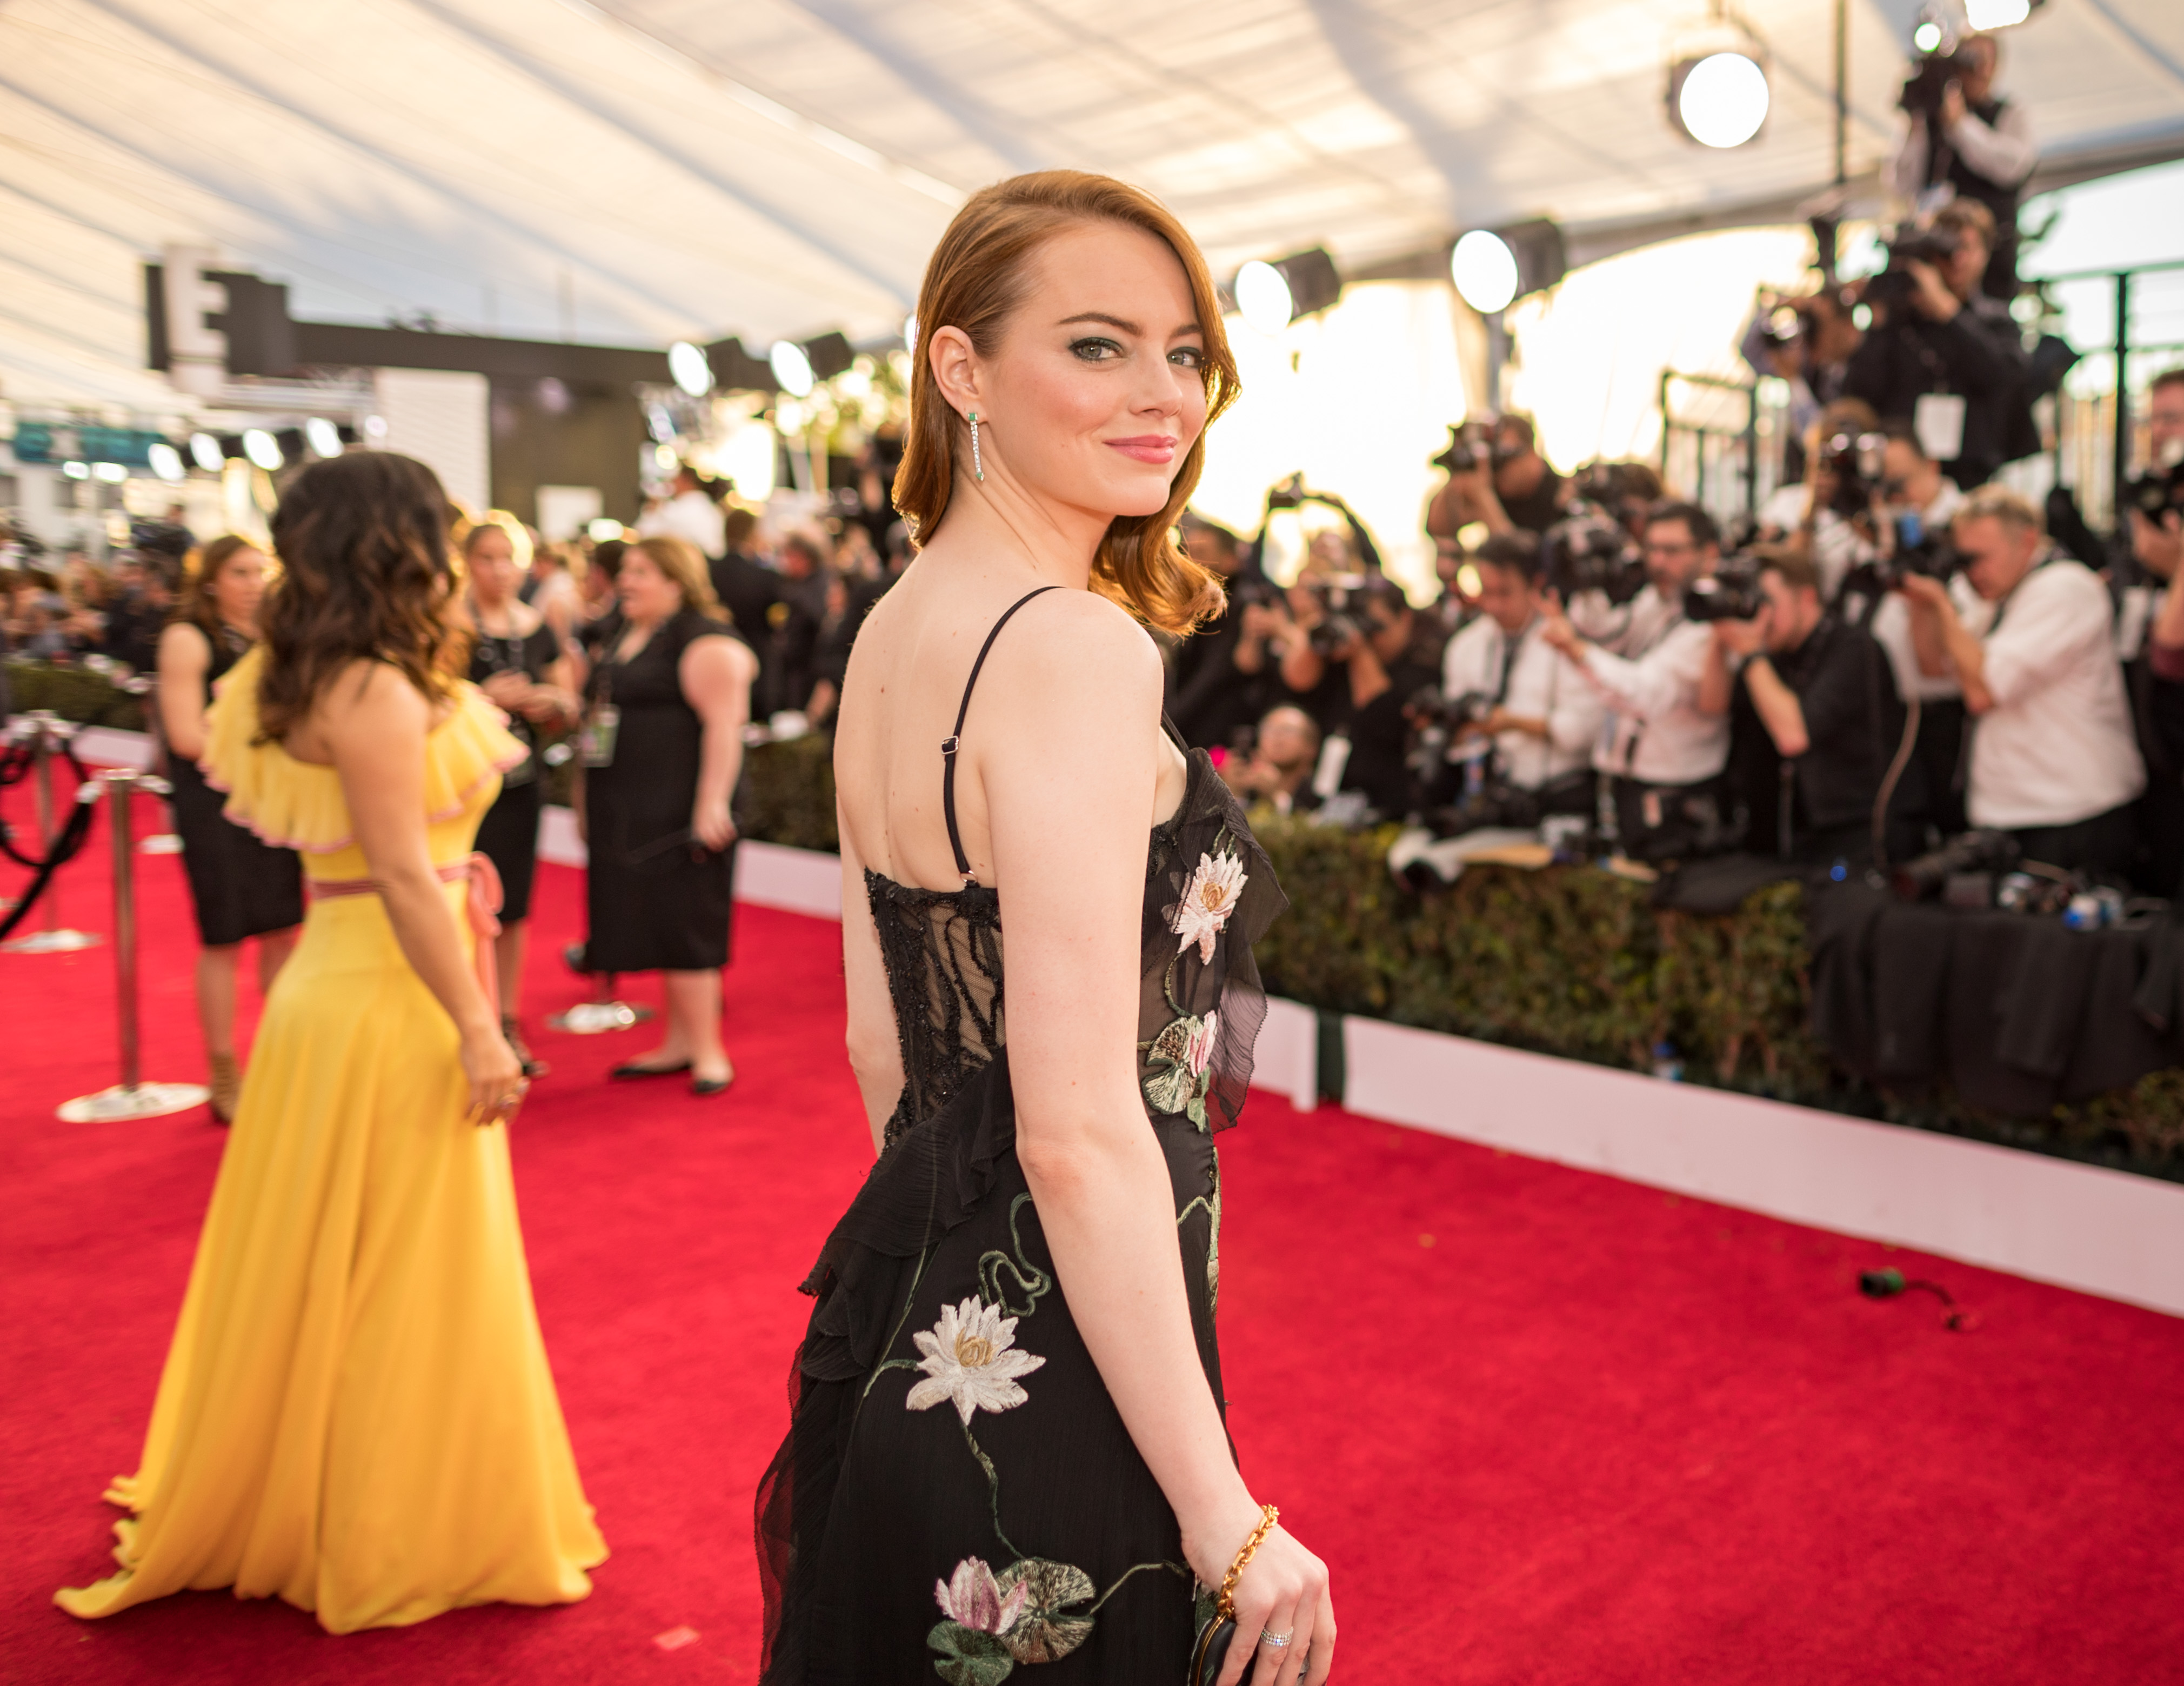 The Best Behind-the-Scenes Instagrams of the SAG Awards 2017